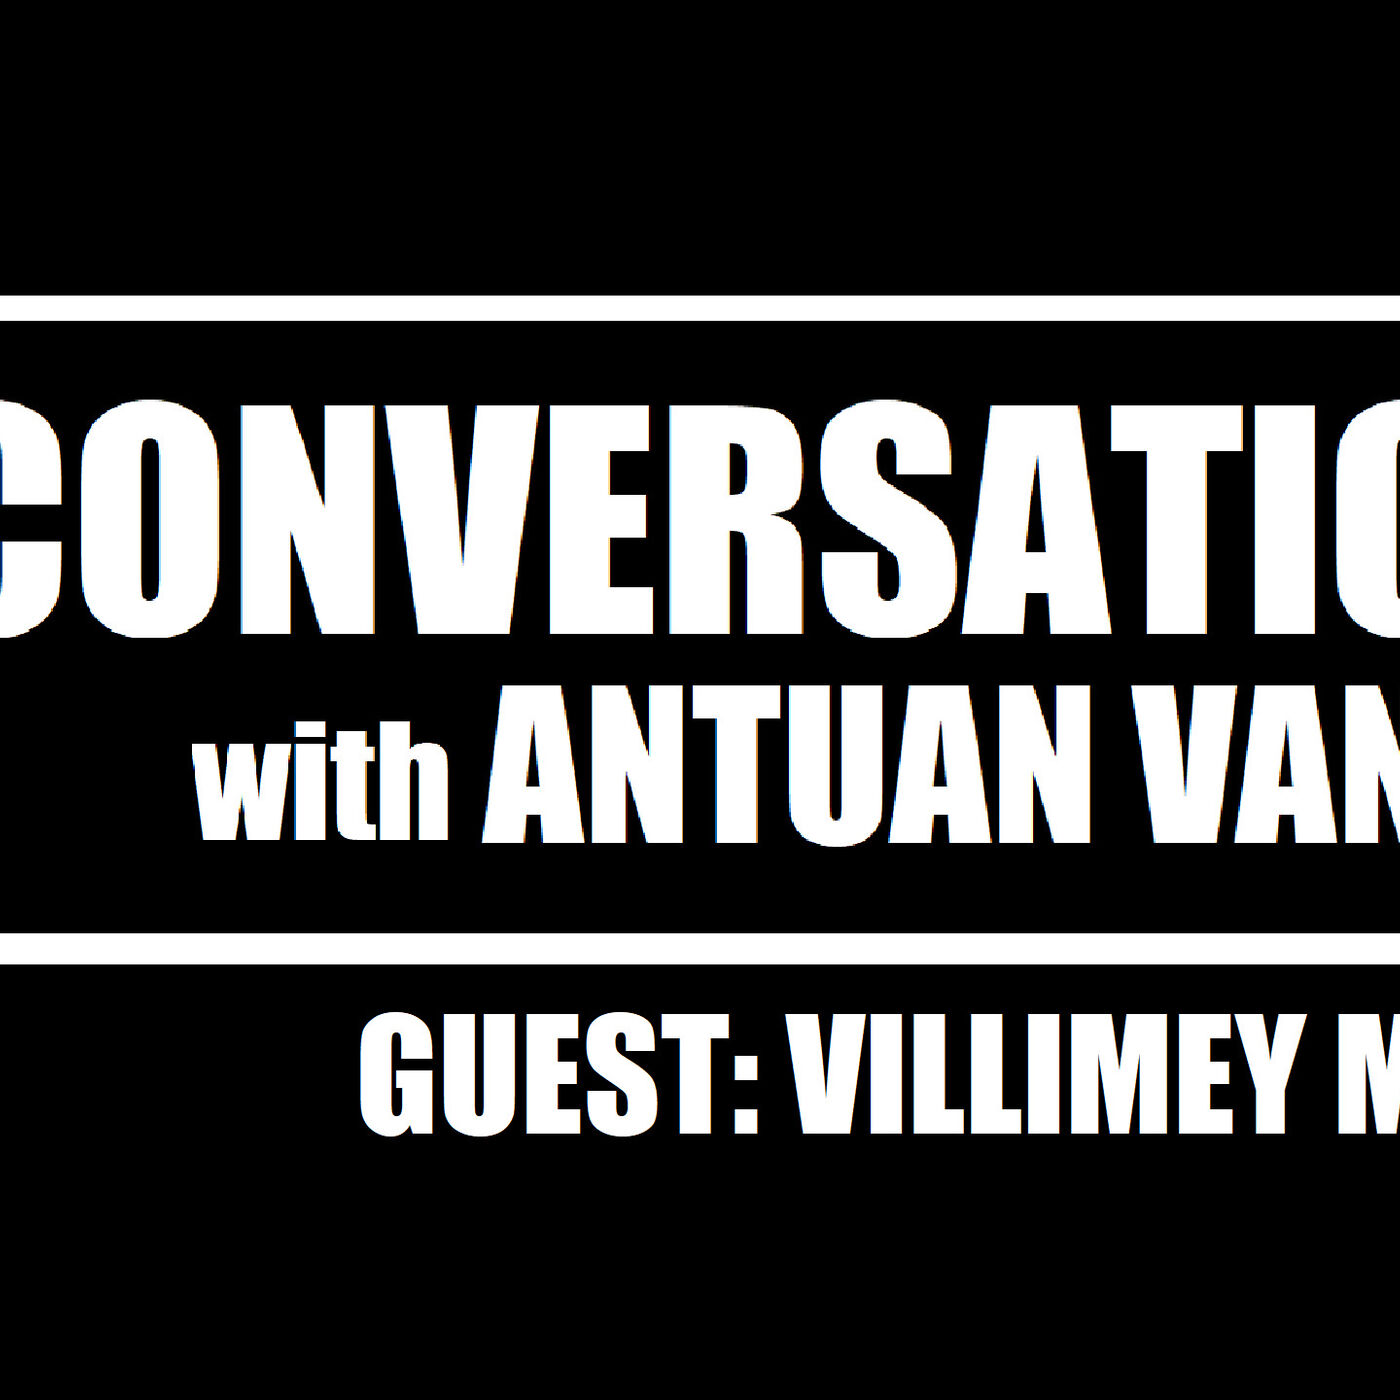 VILLIMEY MIST: Author of THE NOCTURNAL SERIES | S1E5 | A Conversation with Antuan Vance Podcast